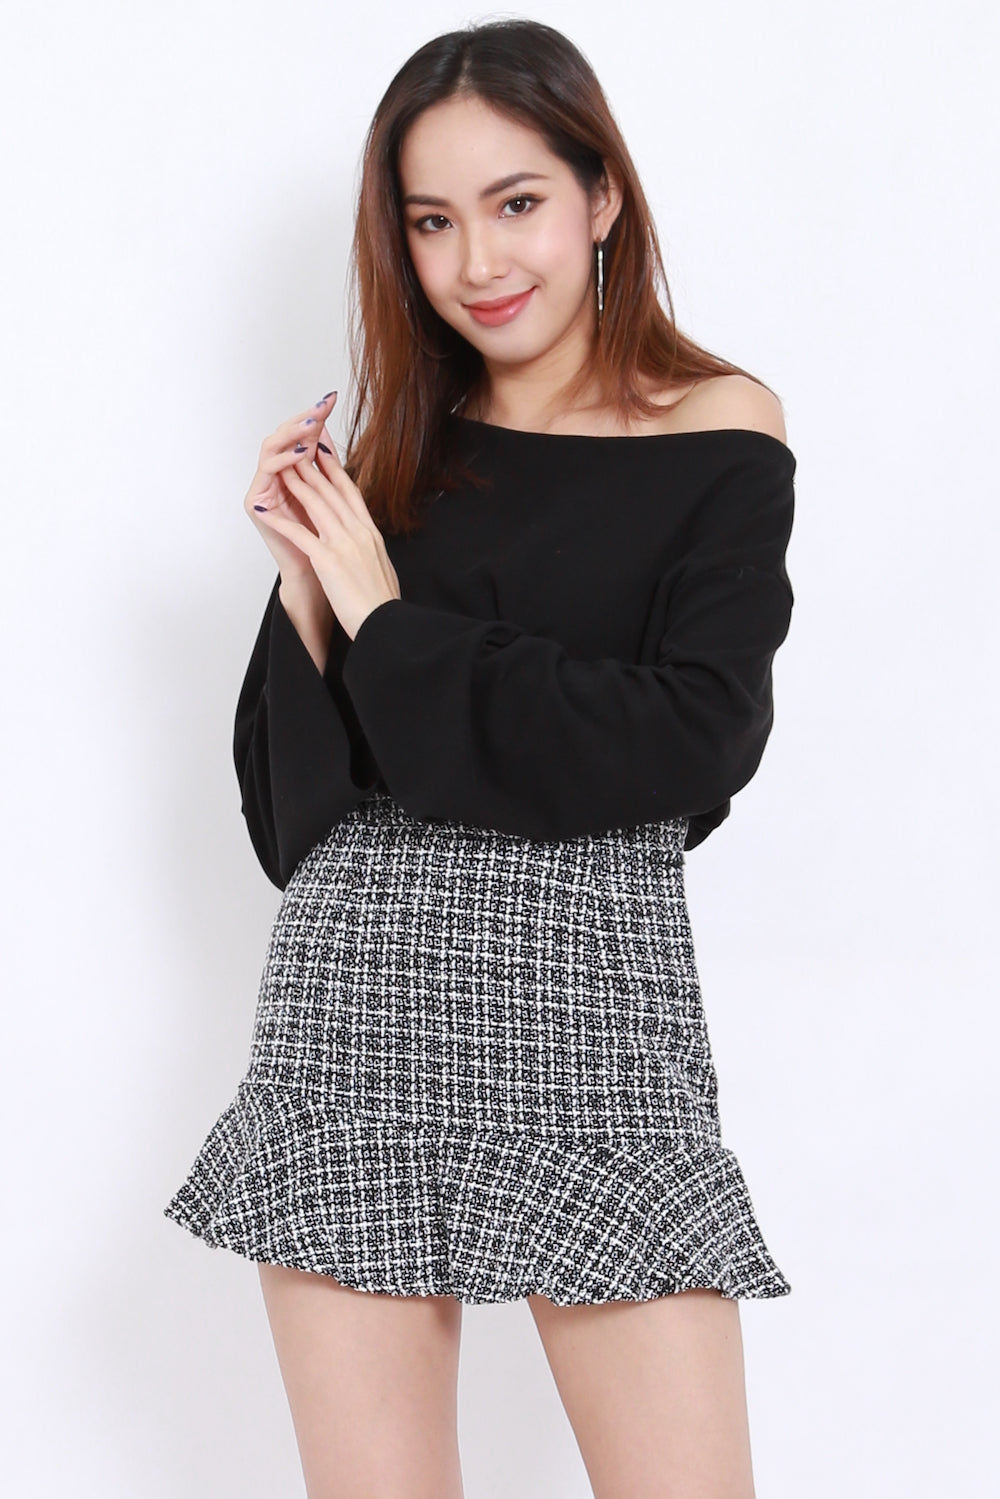 eb9e702cf51 Oversize Knit One Shoulder Top (Black) – Carrislabelle